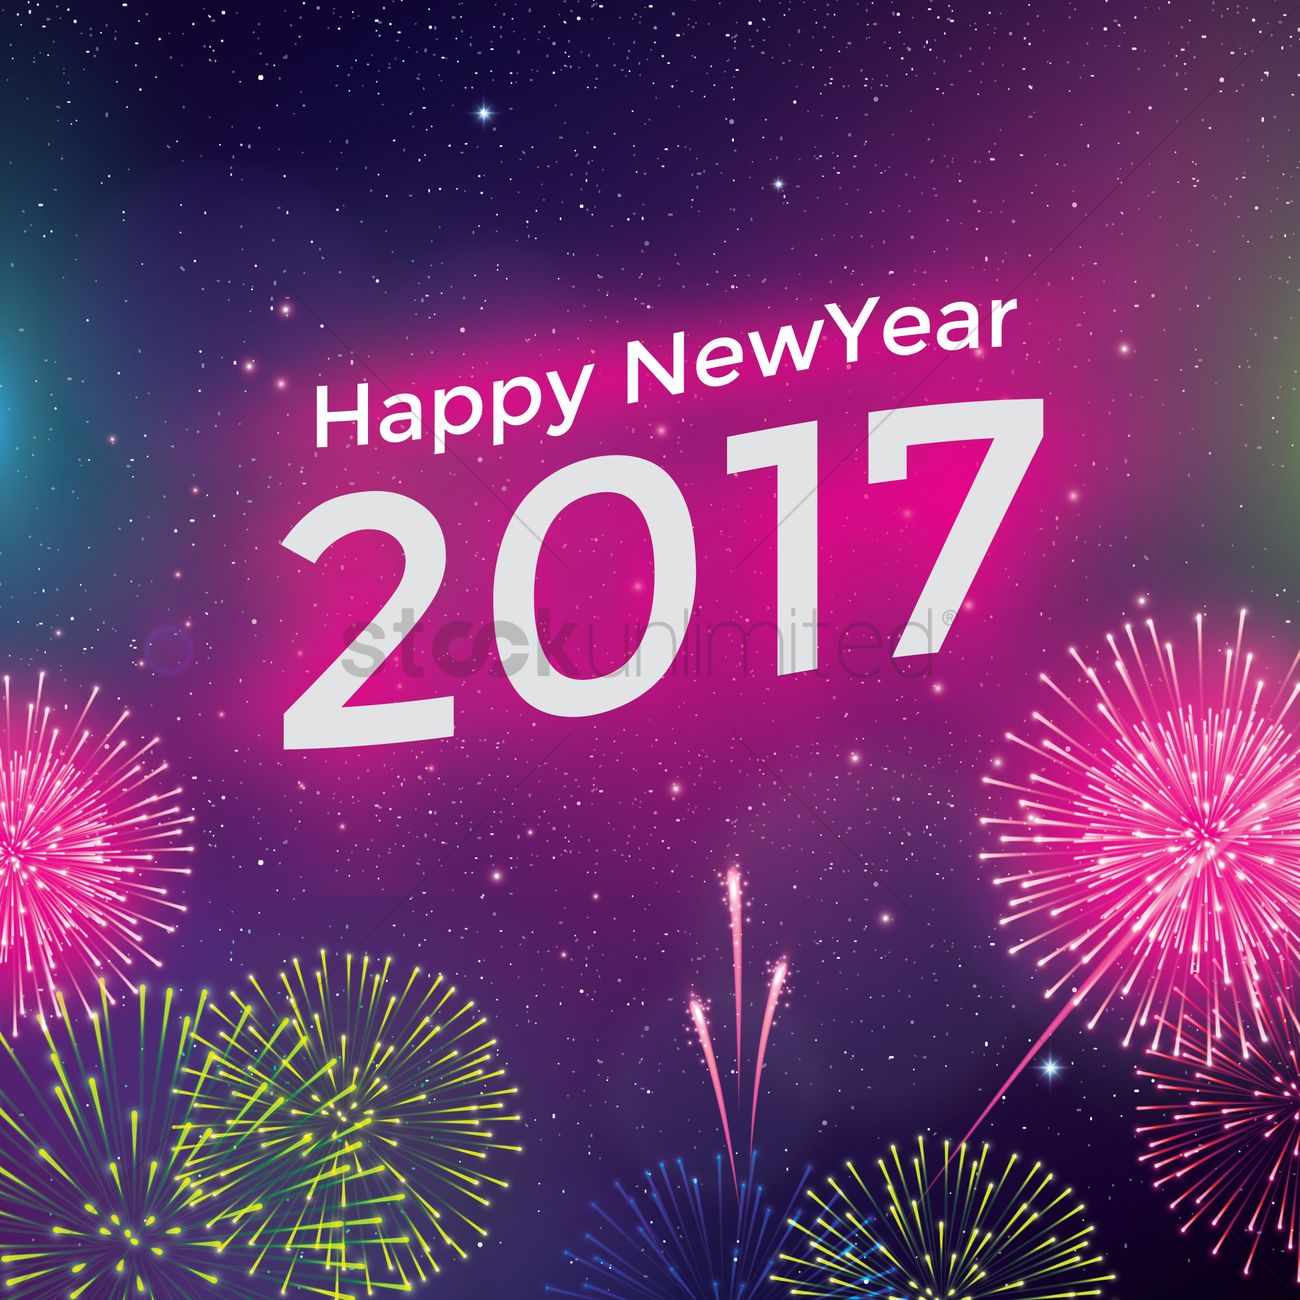 2017 new year greeting vector image 1940088 stockunlimited 2017 new year greeting vector graphic m4hsunfo